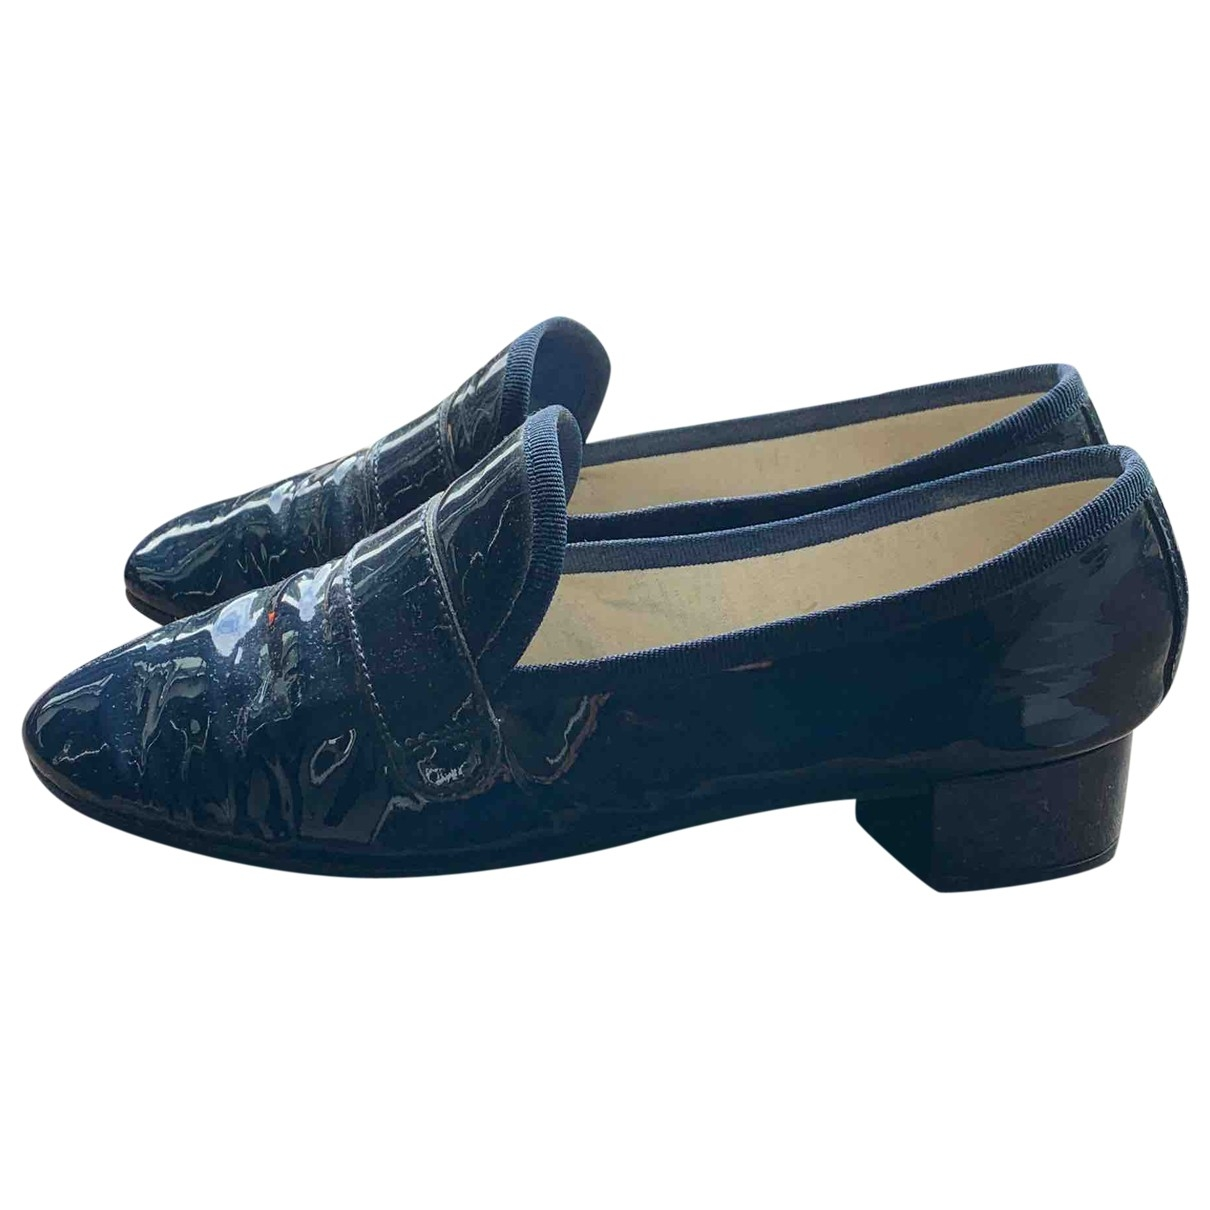 Repetto \N Blue Patent leather Flats for Women 38.5 EU